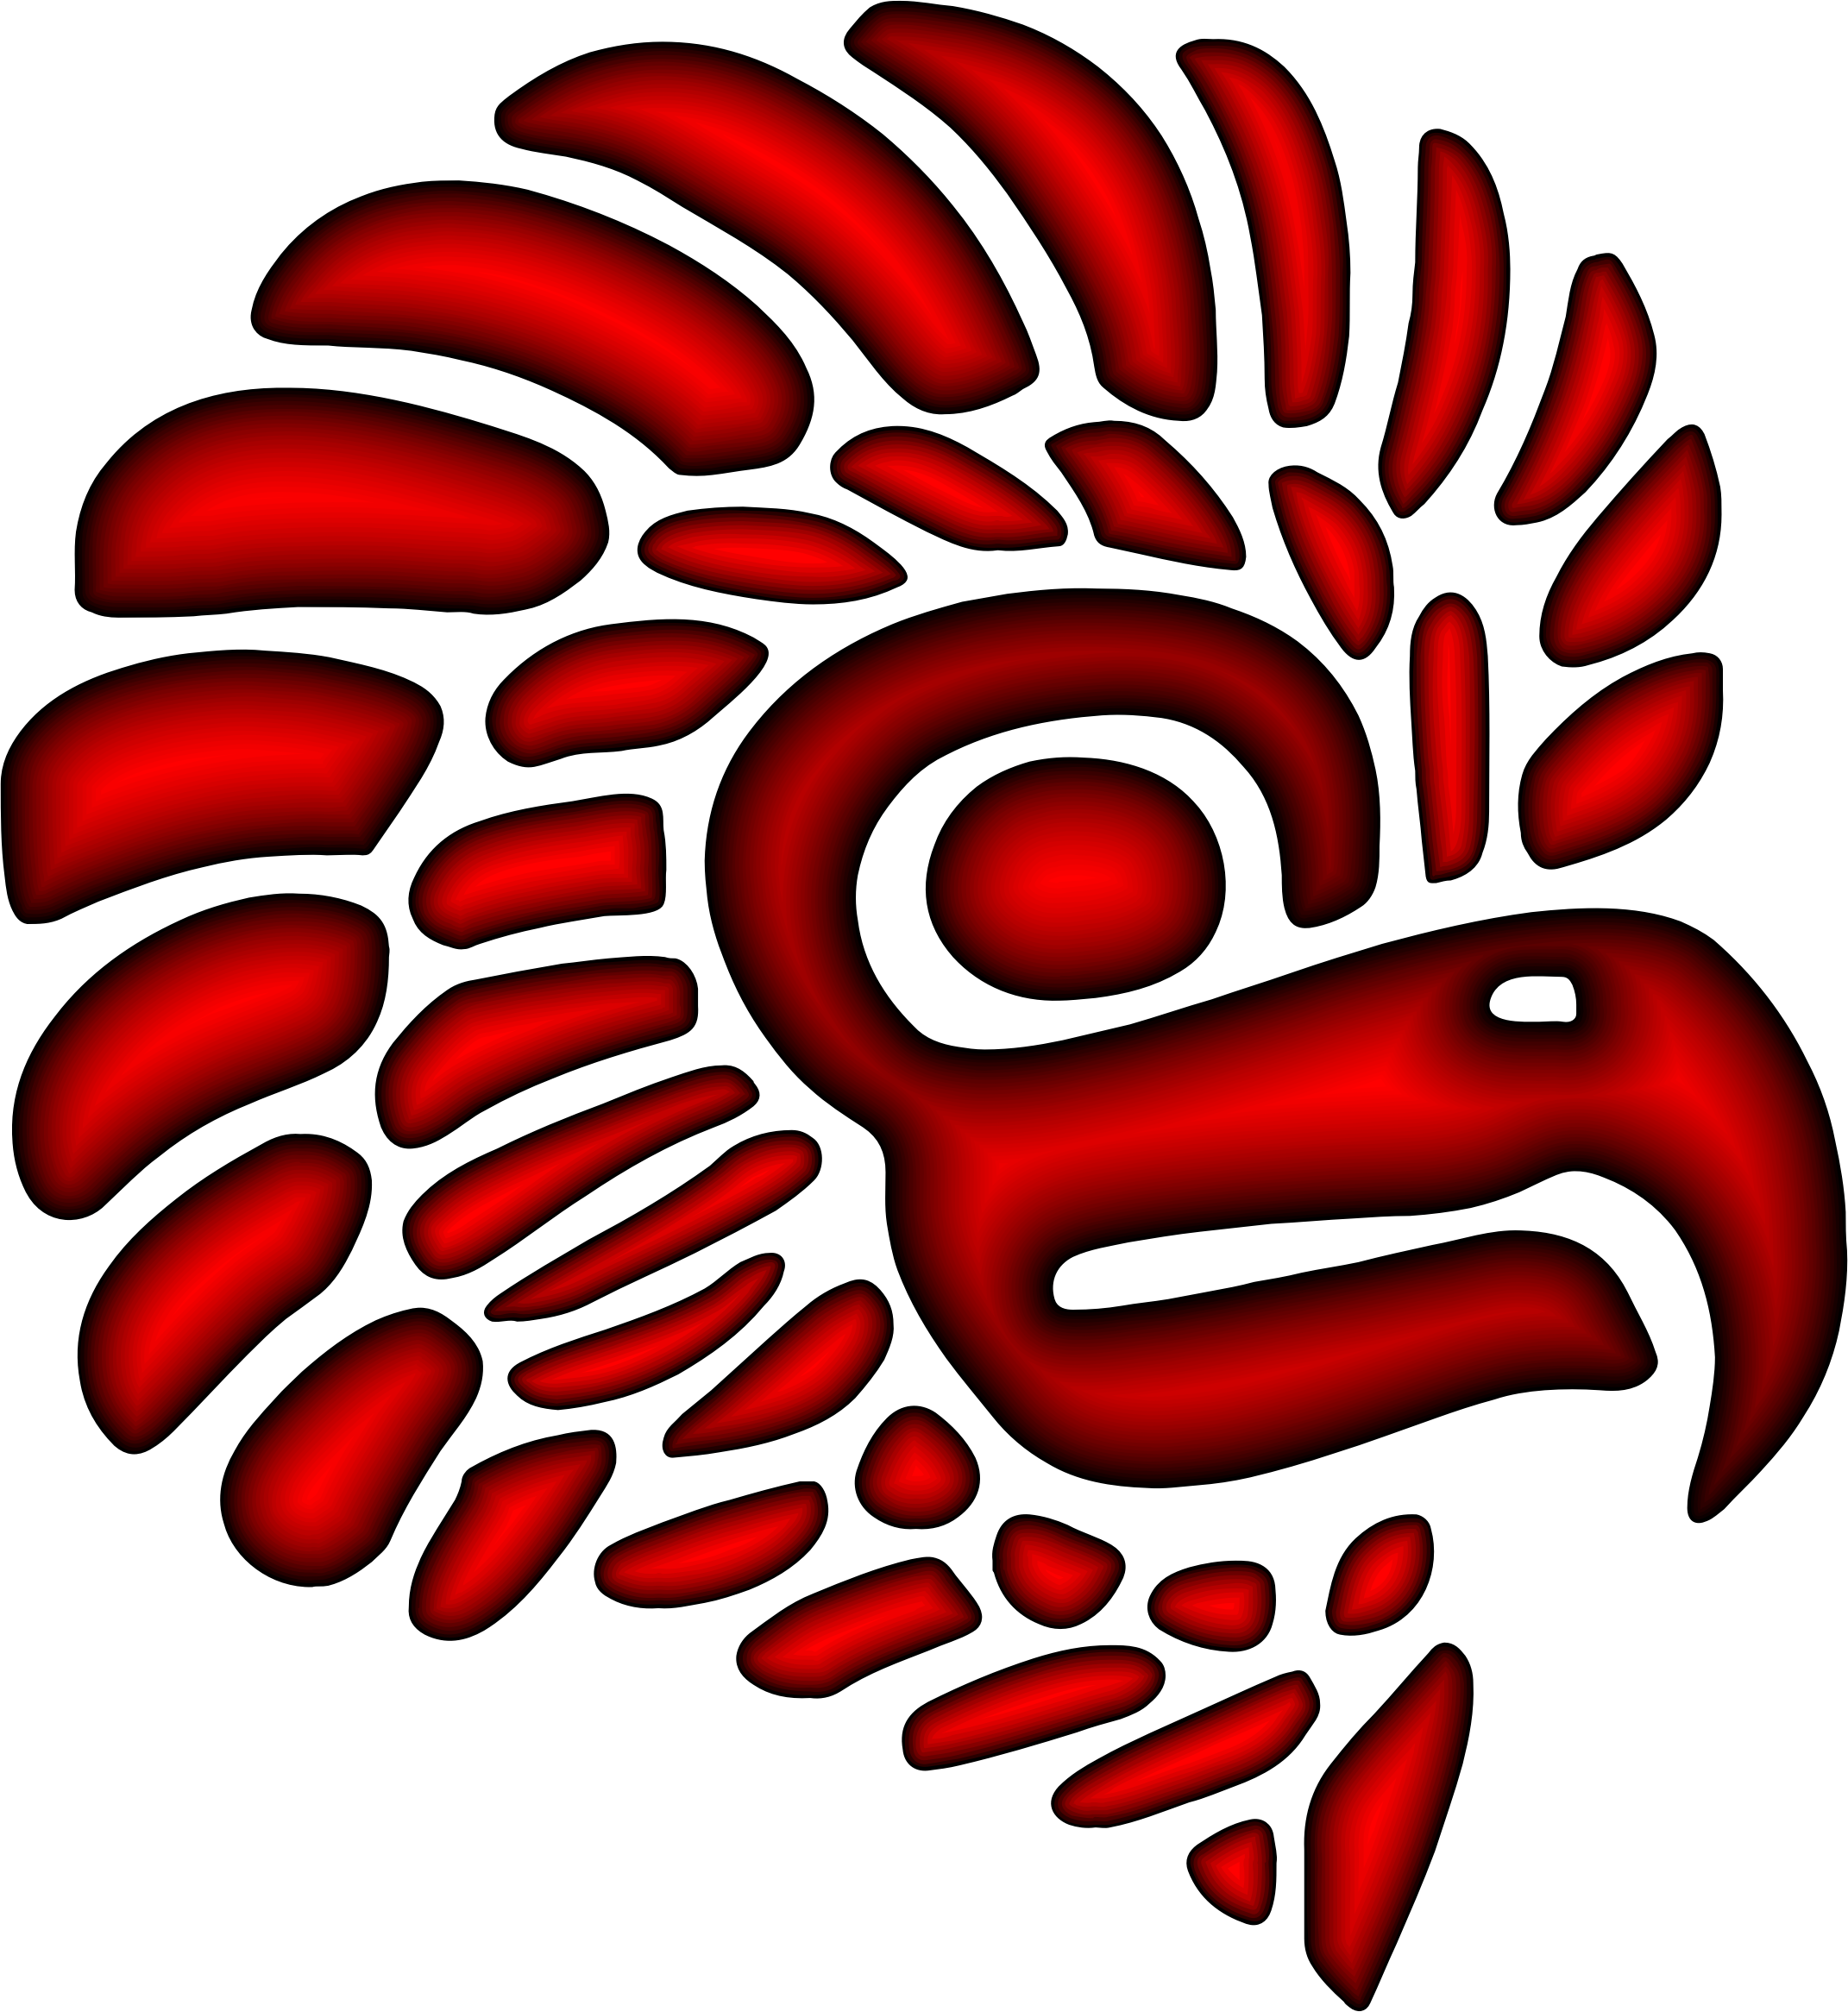 Crimson Stylized Mexican Eagle Silhouette by GDJ